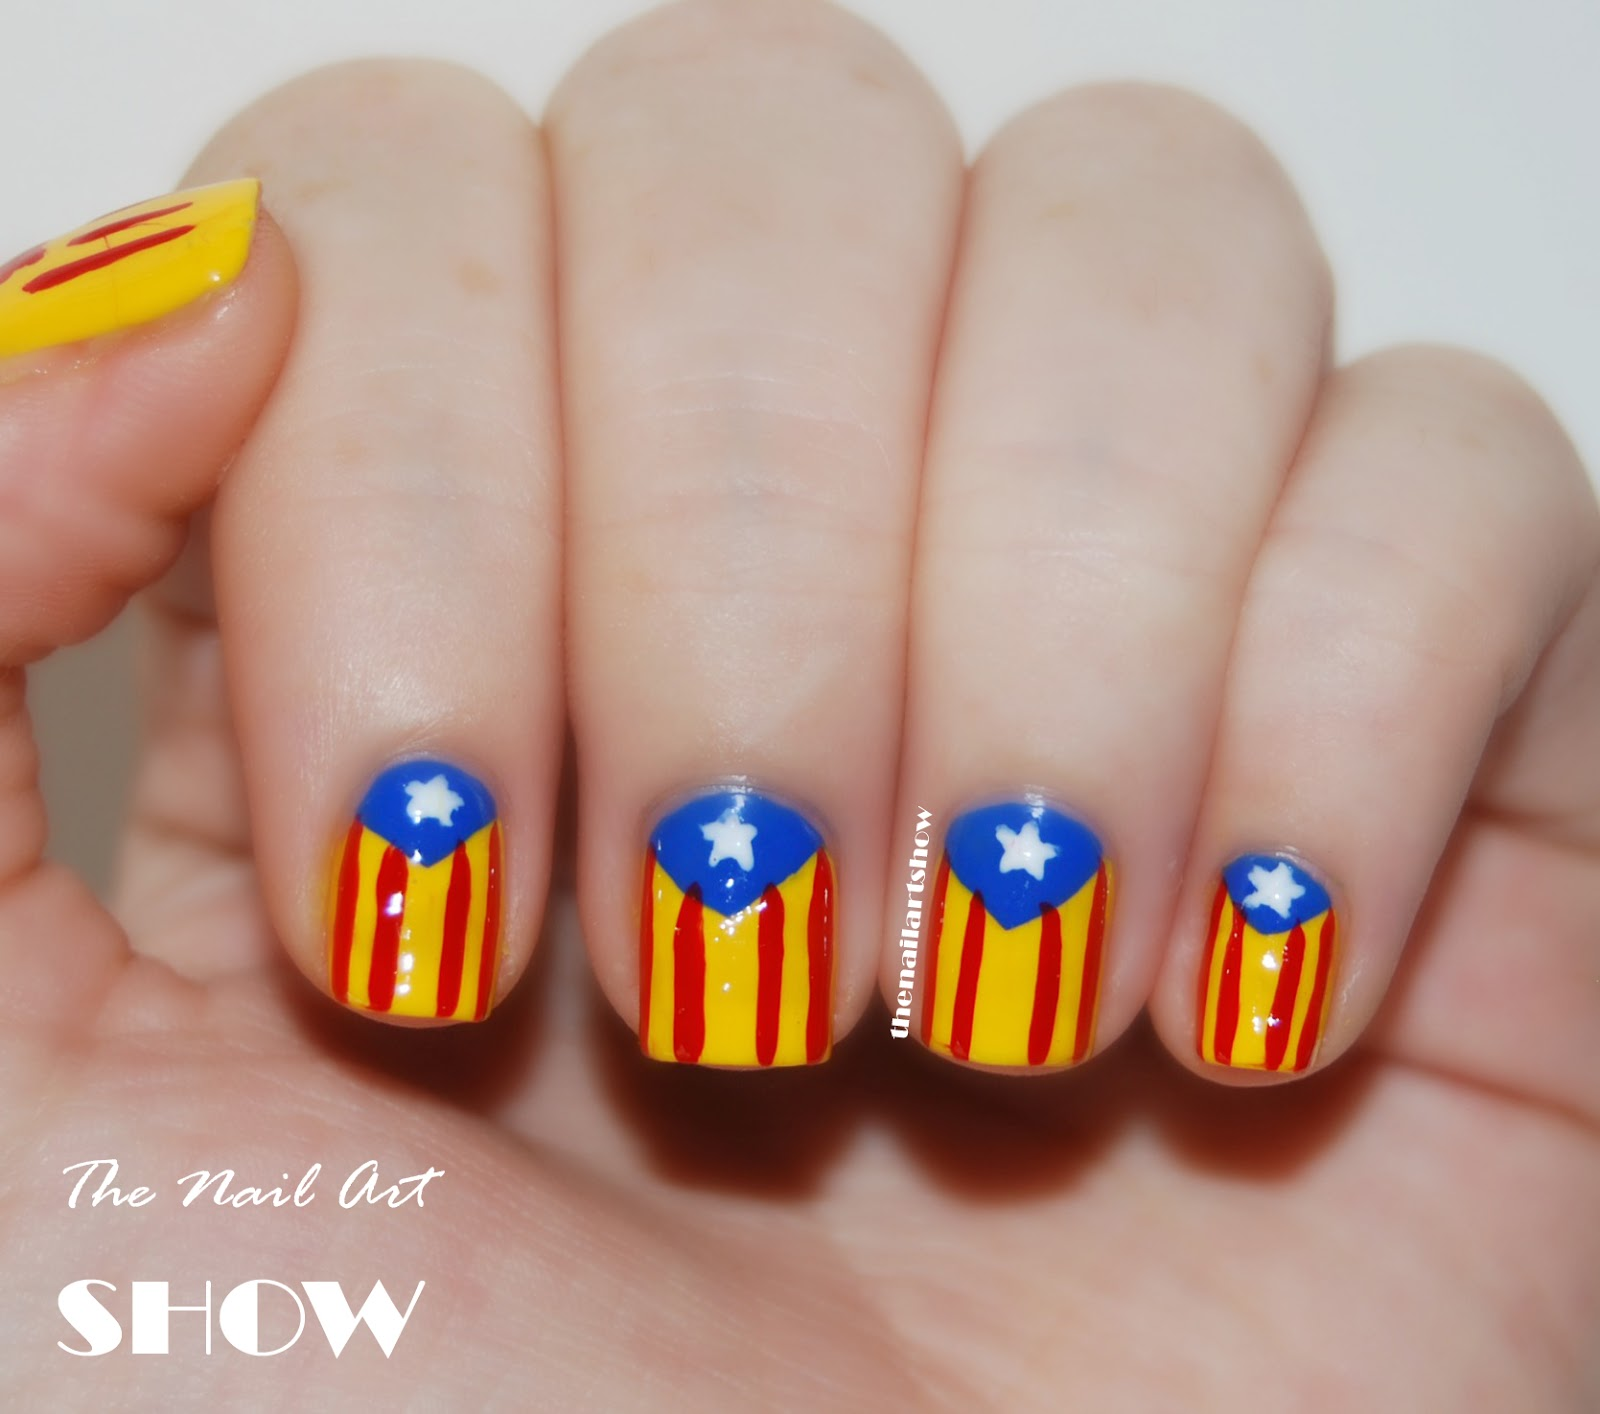 The Nail Art Show Just A 19 Year Old Girl That Loves Painting Her